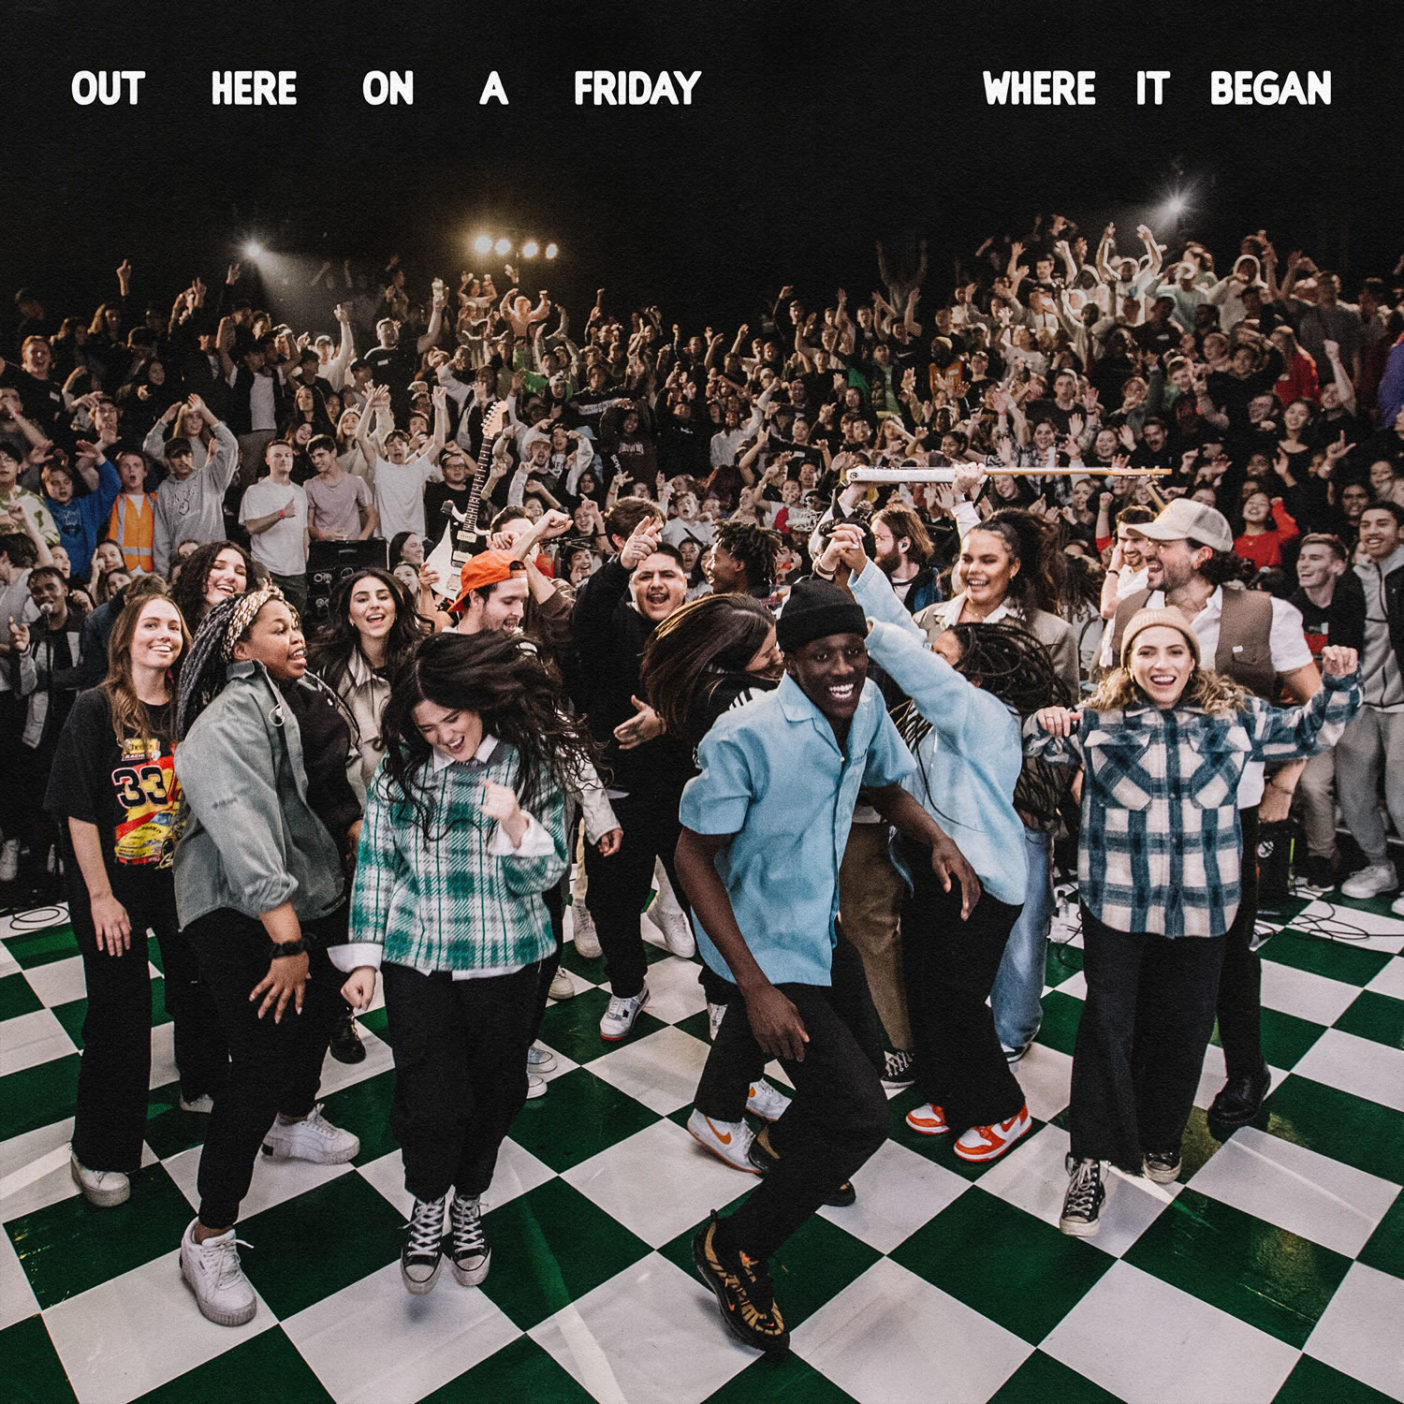 Hillsong Young & Free - Out Here on a Friday Where It Began